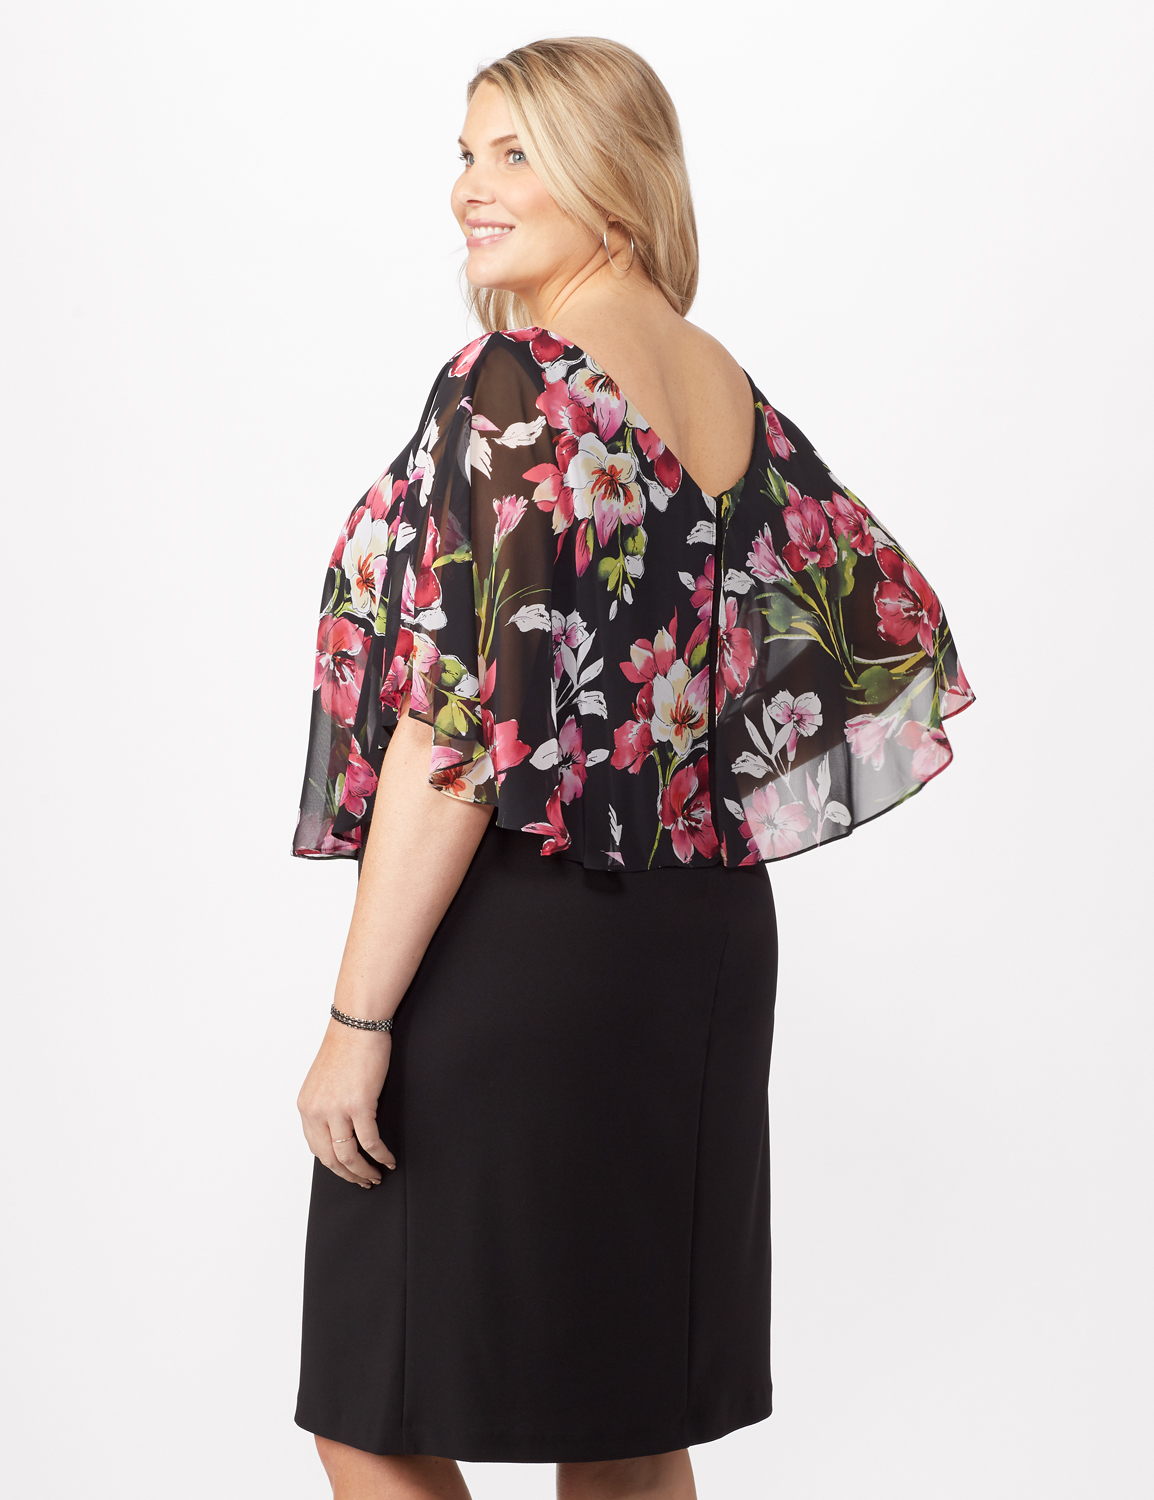 Solid Crepe Dress with Floral Cape -Fuschia - Back